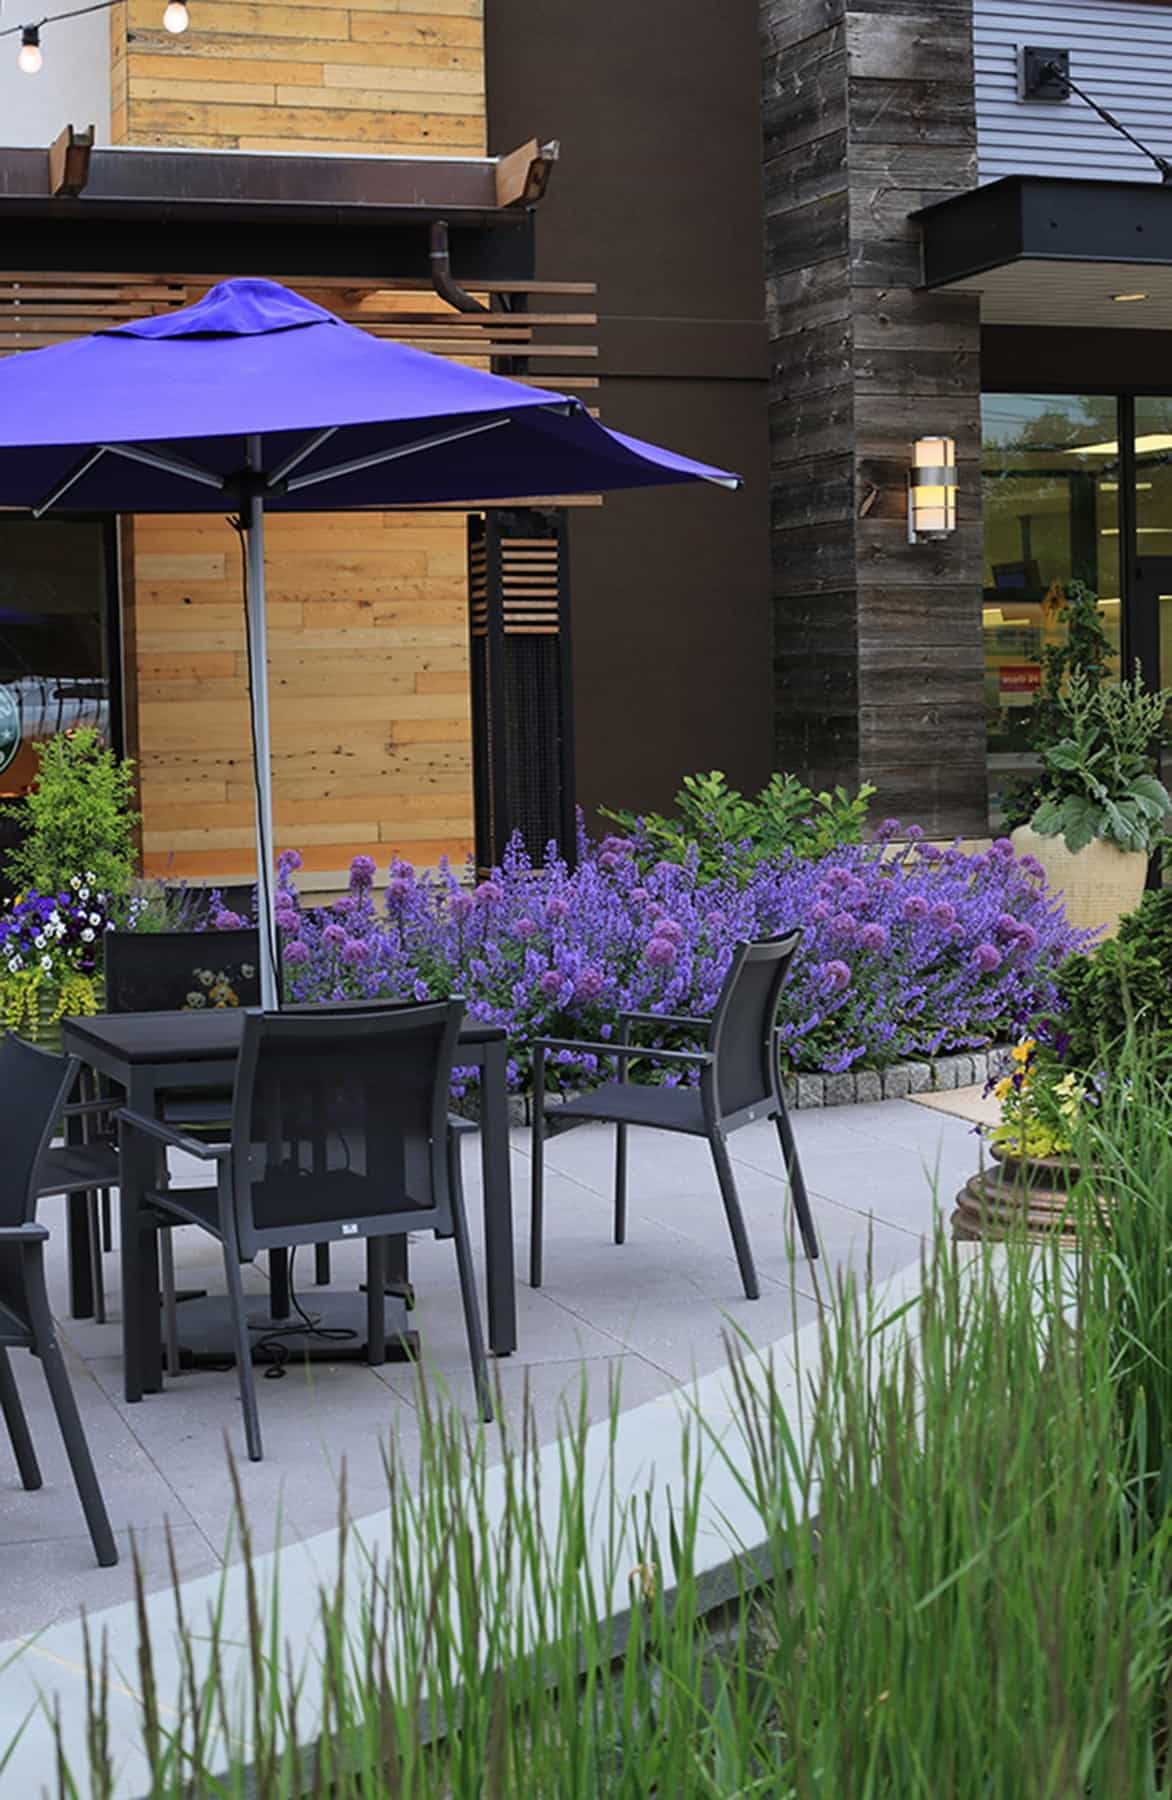 Featured Image of Beautiful Purple Flowers And Patio Umbrellas